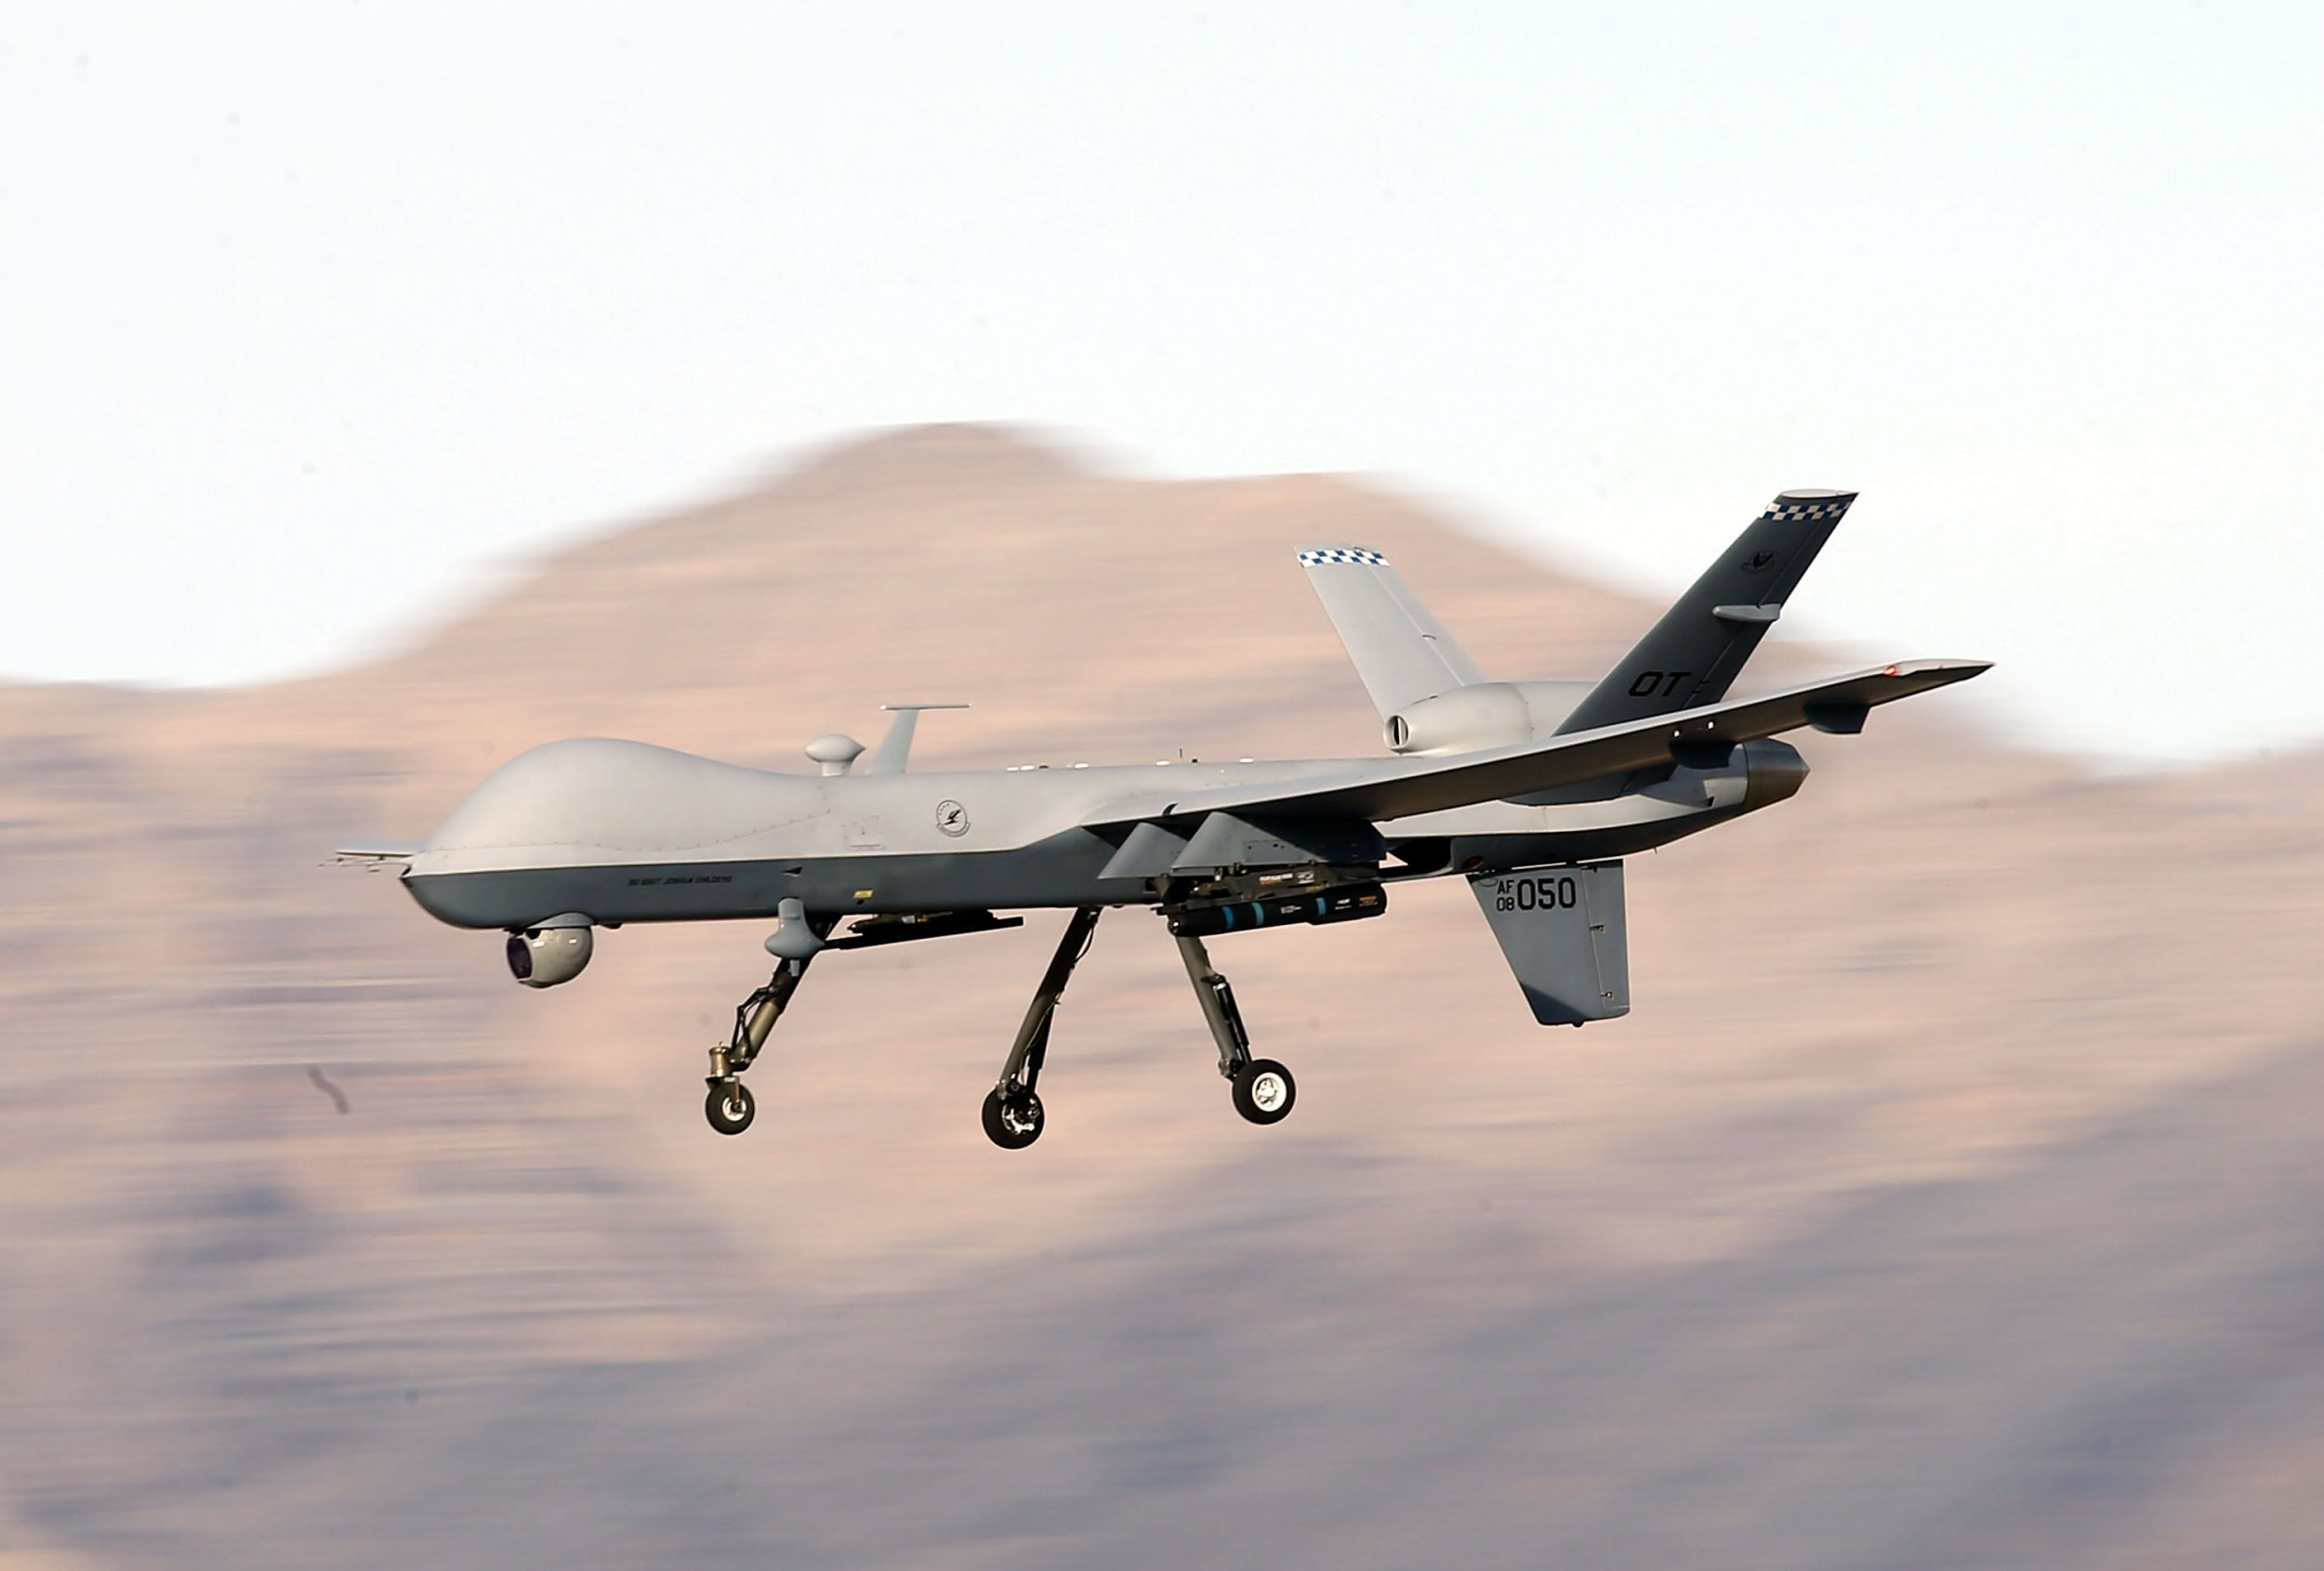 11_01_Niger_US_military_drones